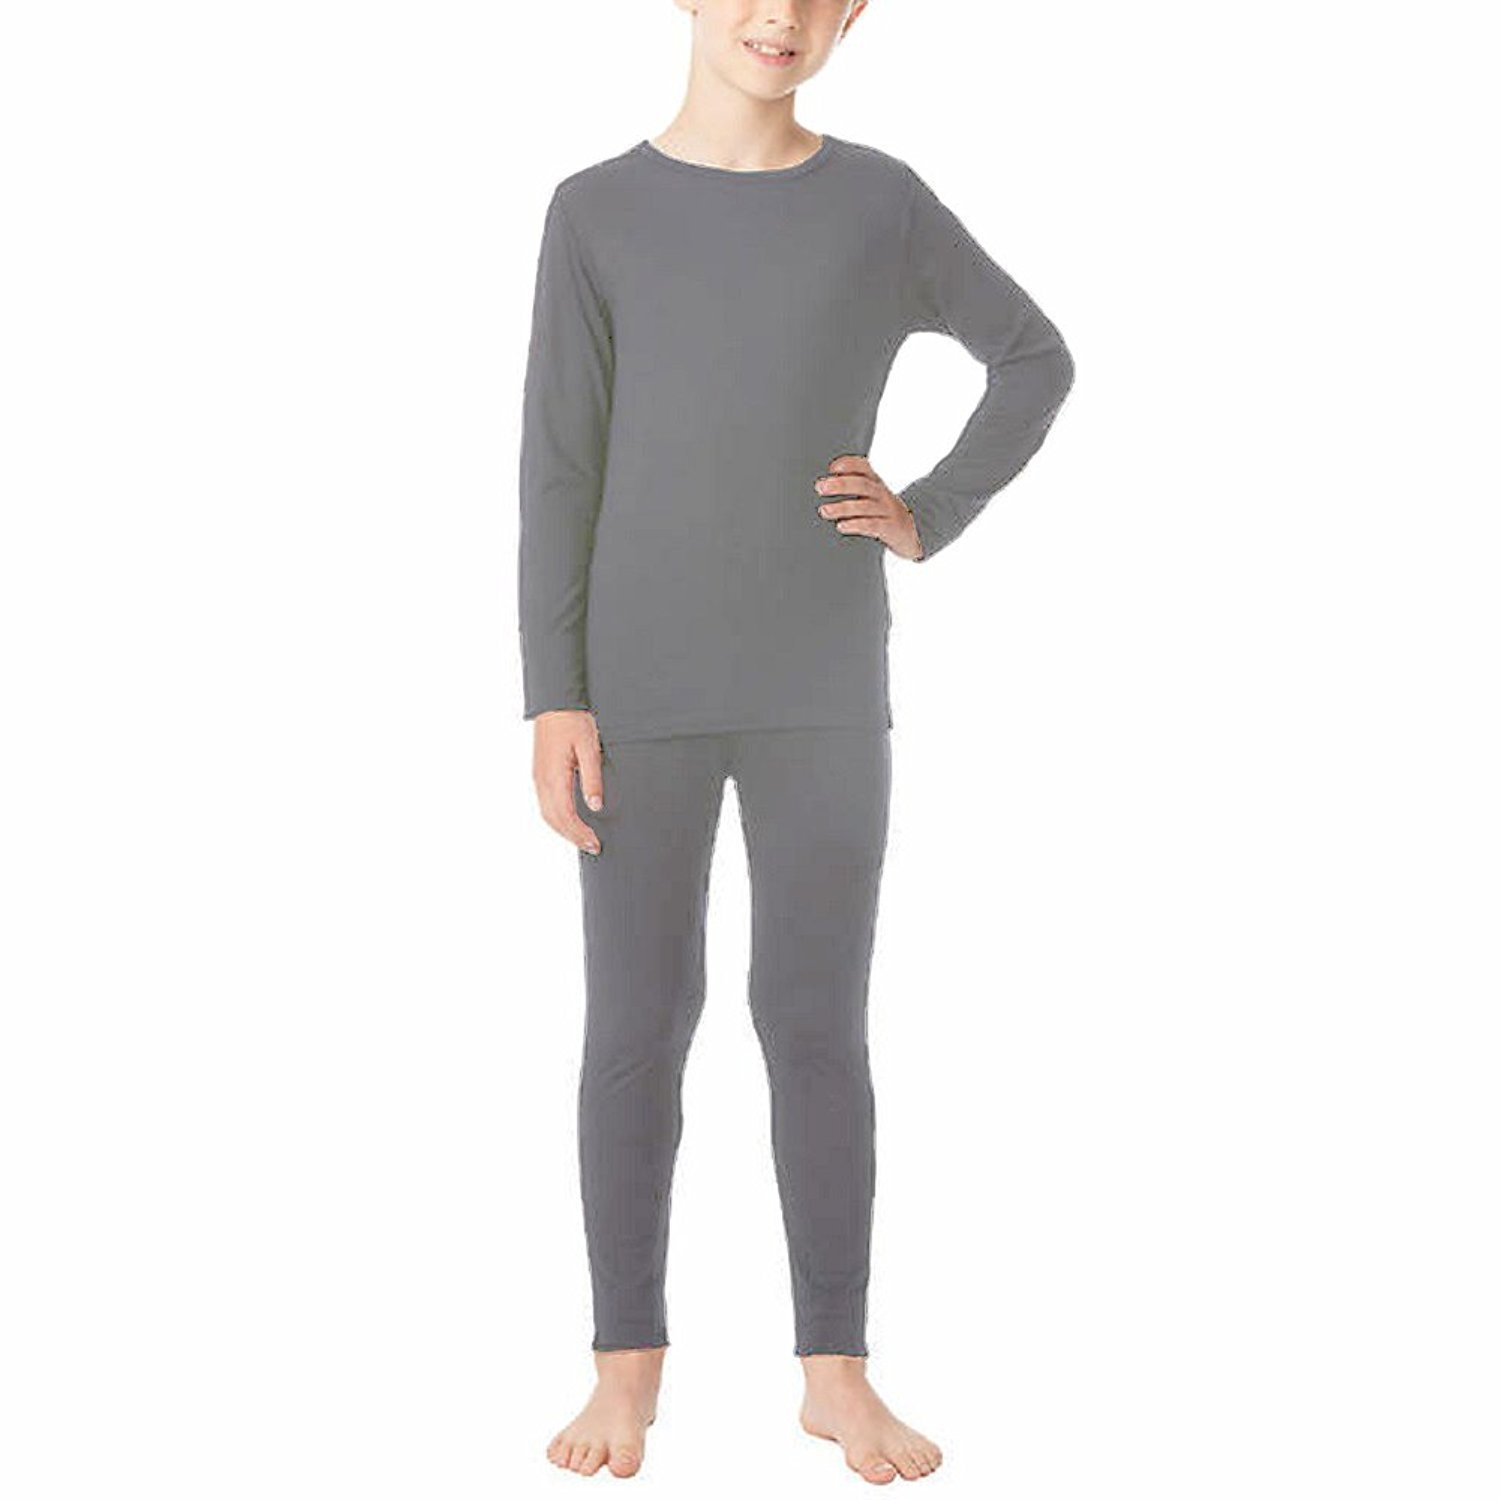 32 Degrees Heat Boys Long Sleeve Crew Neck and Legging Set;Dark Heather Charcoal'Large(12-14)